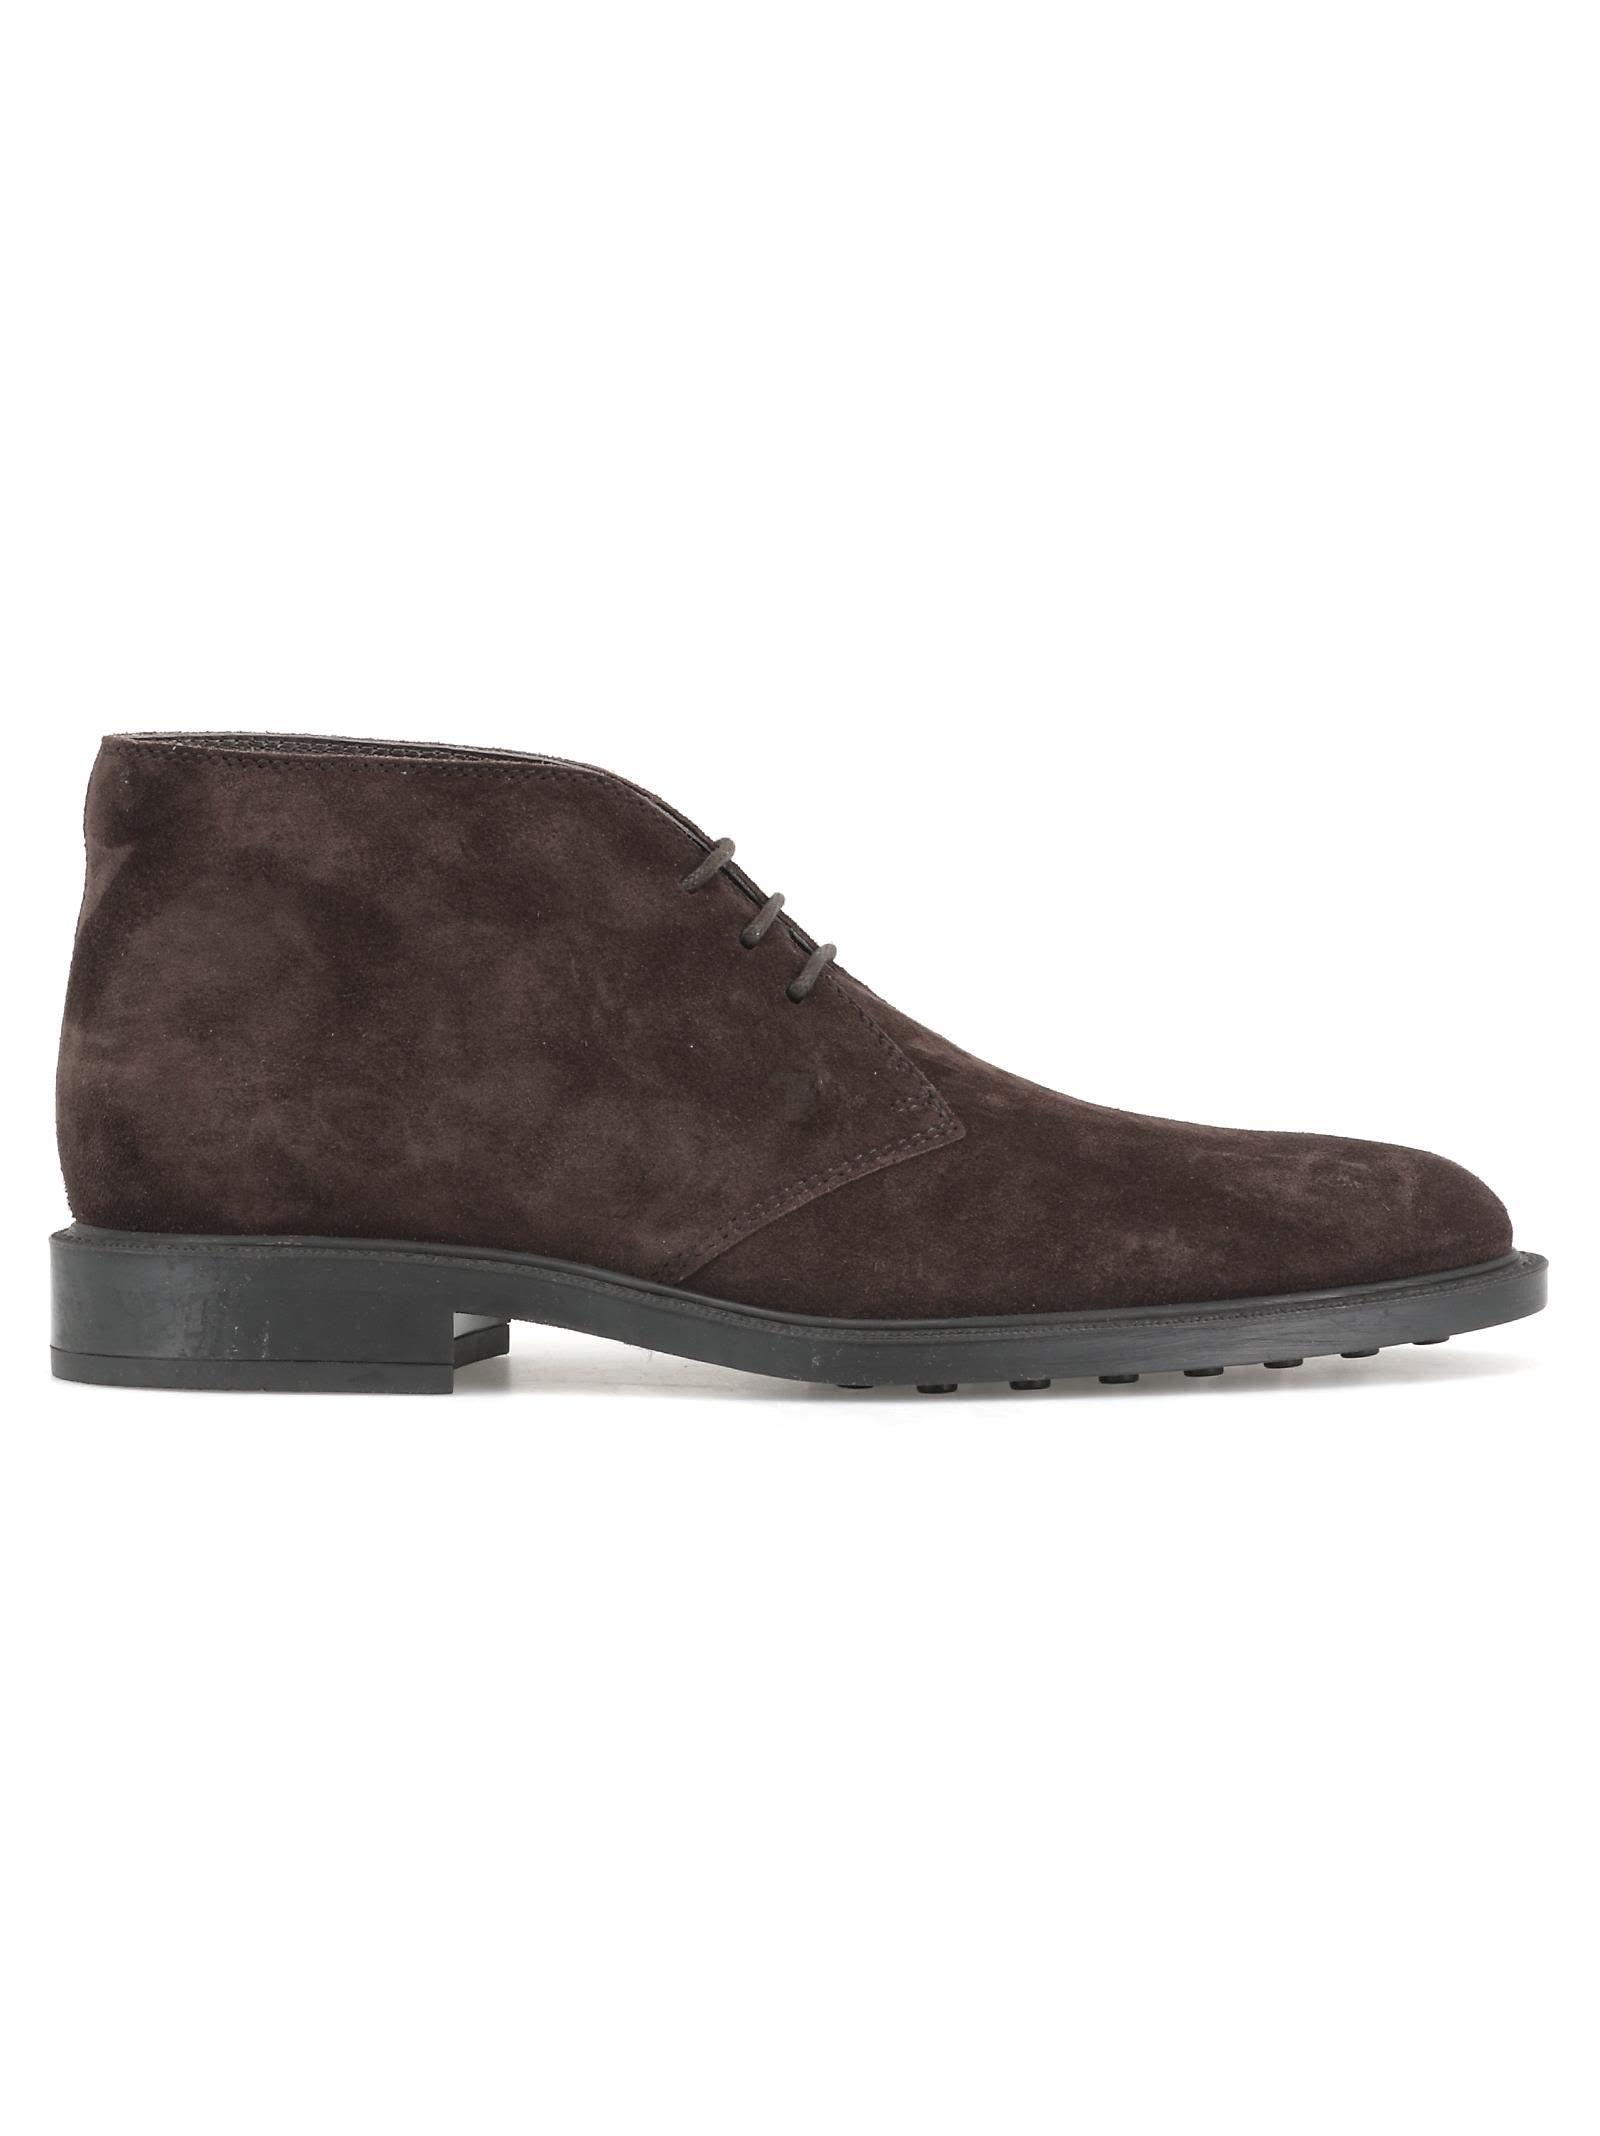 f3e91a0db6d TOD'S LEATHER DESERT BOOT. #tods #shoes | Tod'S in 2019 | Desert ...